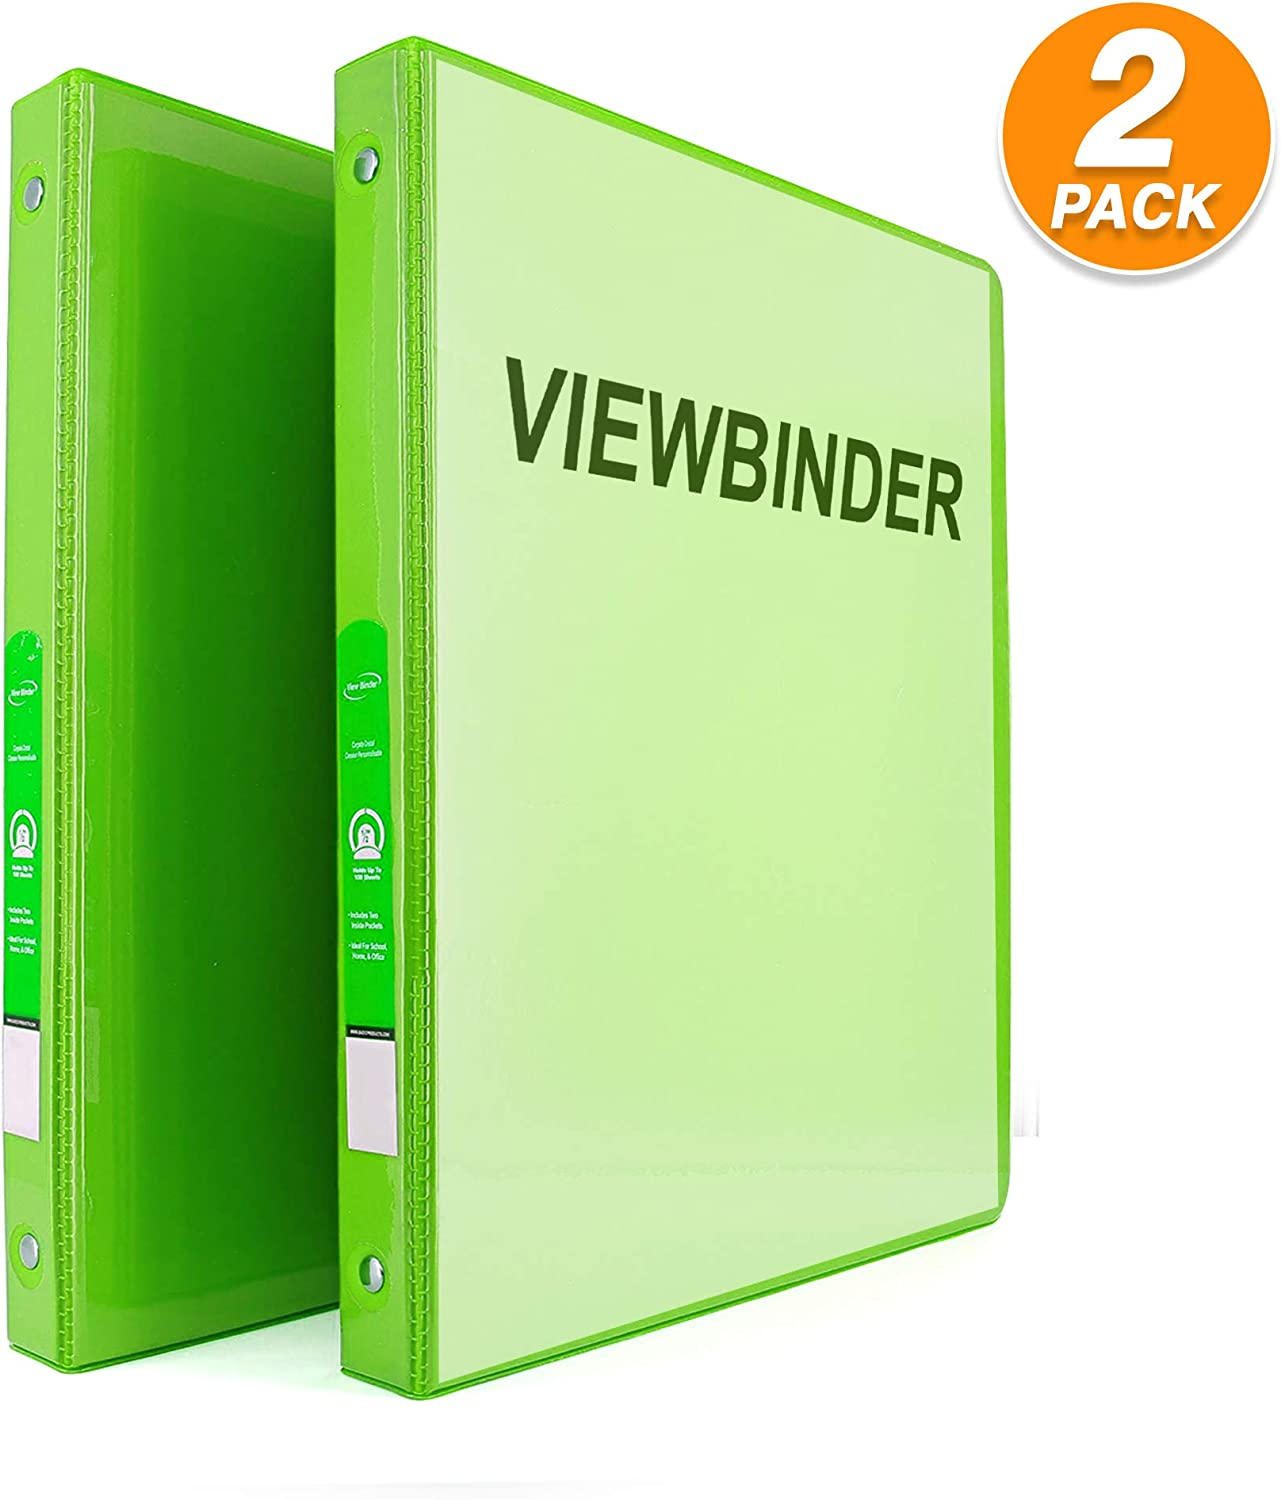 """3 Ring View Binder 1/2"""" Inch with 2 Pockets Ideal for Office, School, Home for organizing Projects, Presentations and More Available in Lime Green (Pack of 2) by - Emraw"""